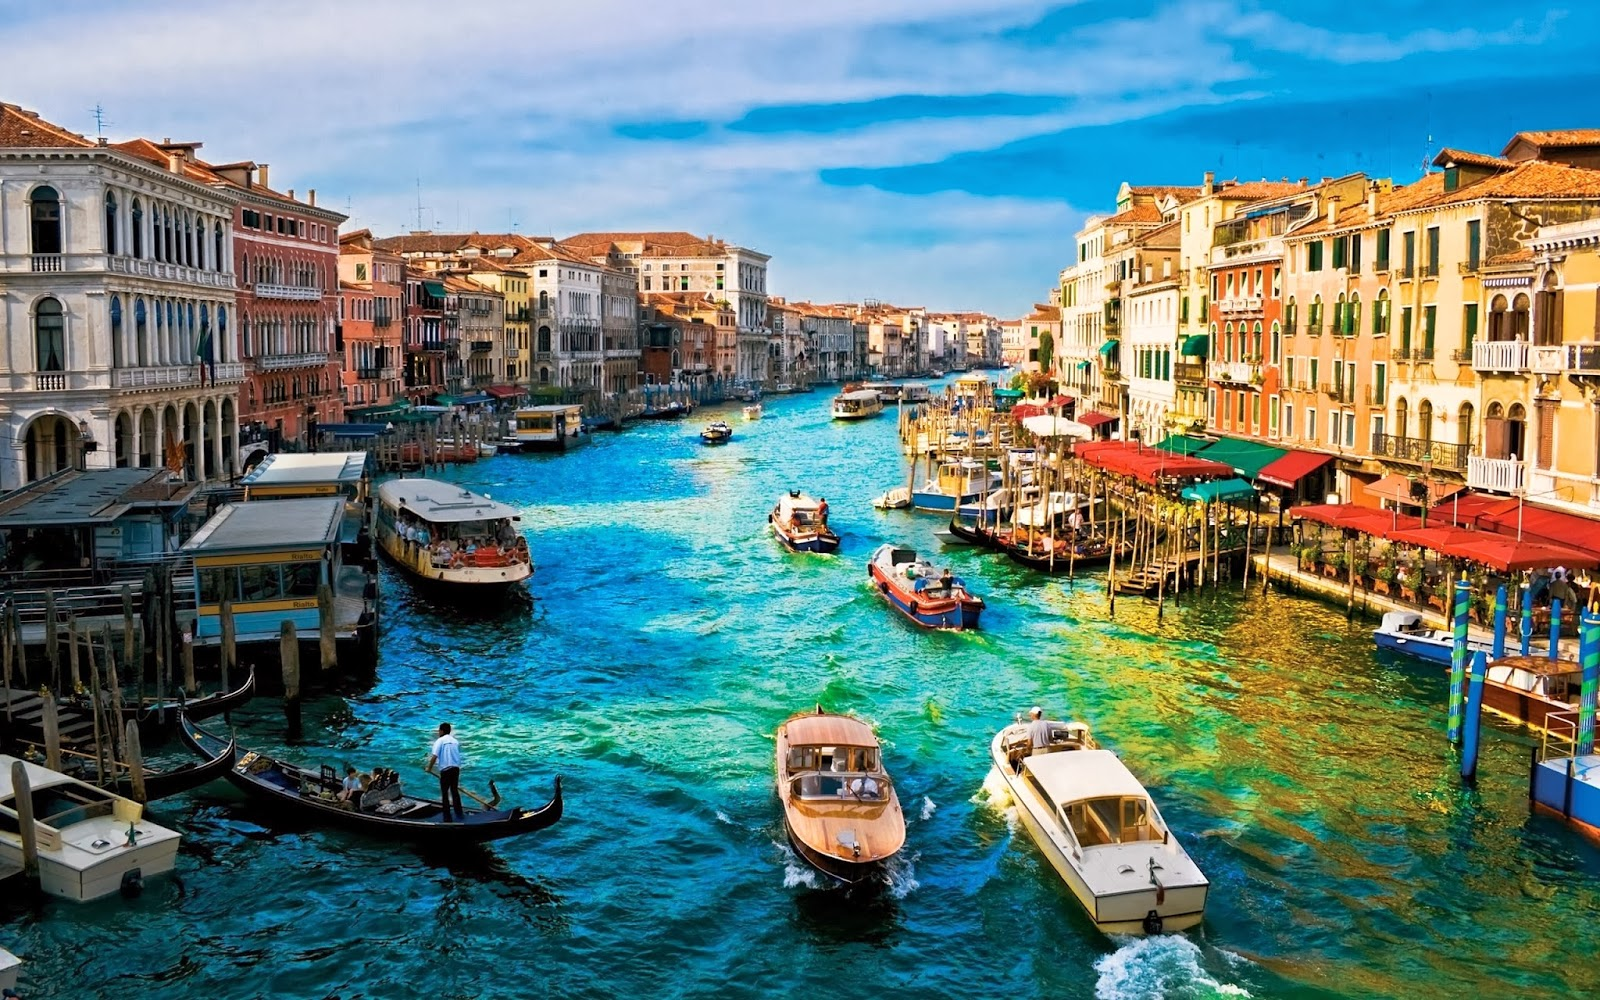 Most famous places in italy techzhelp for Top places to see in italy